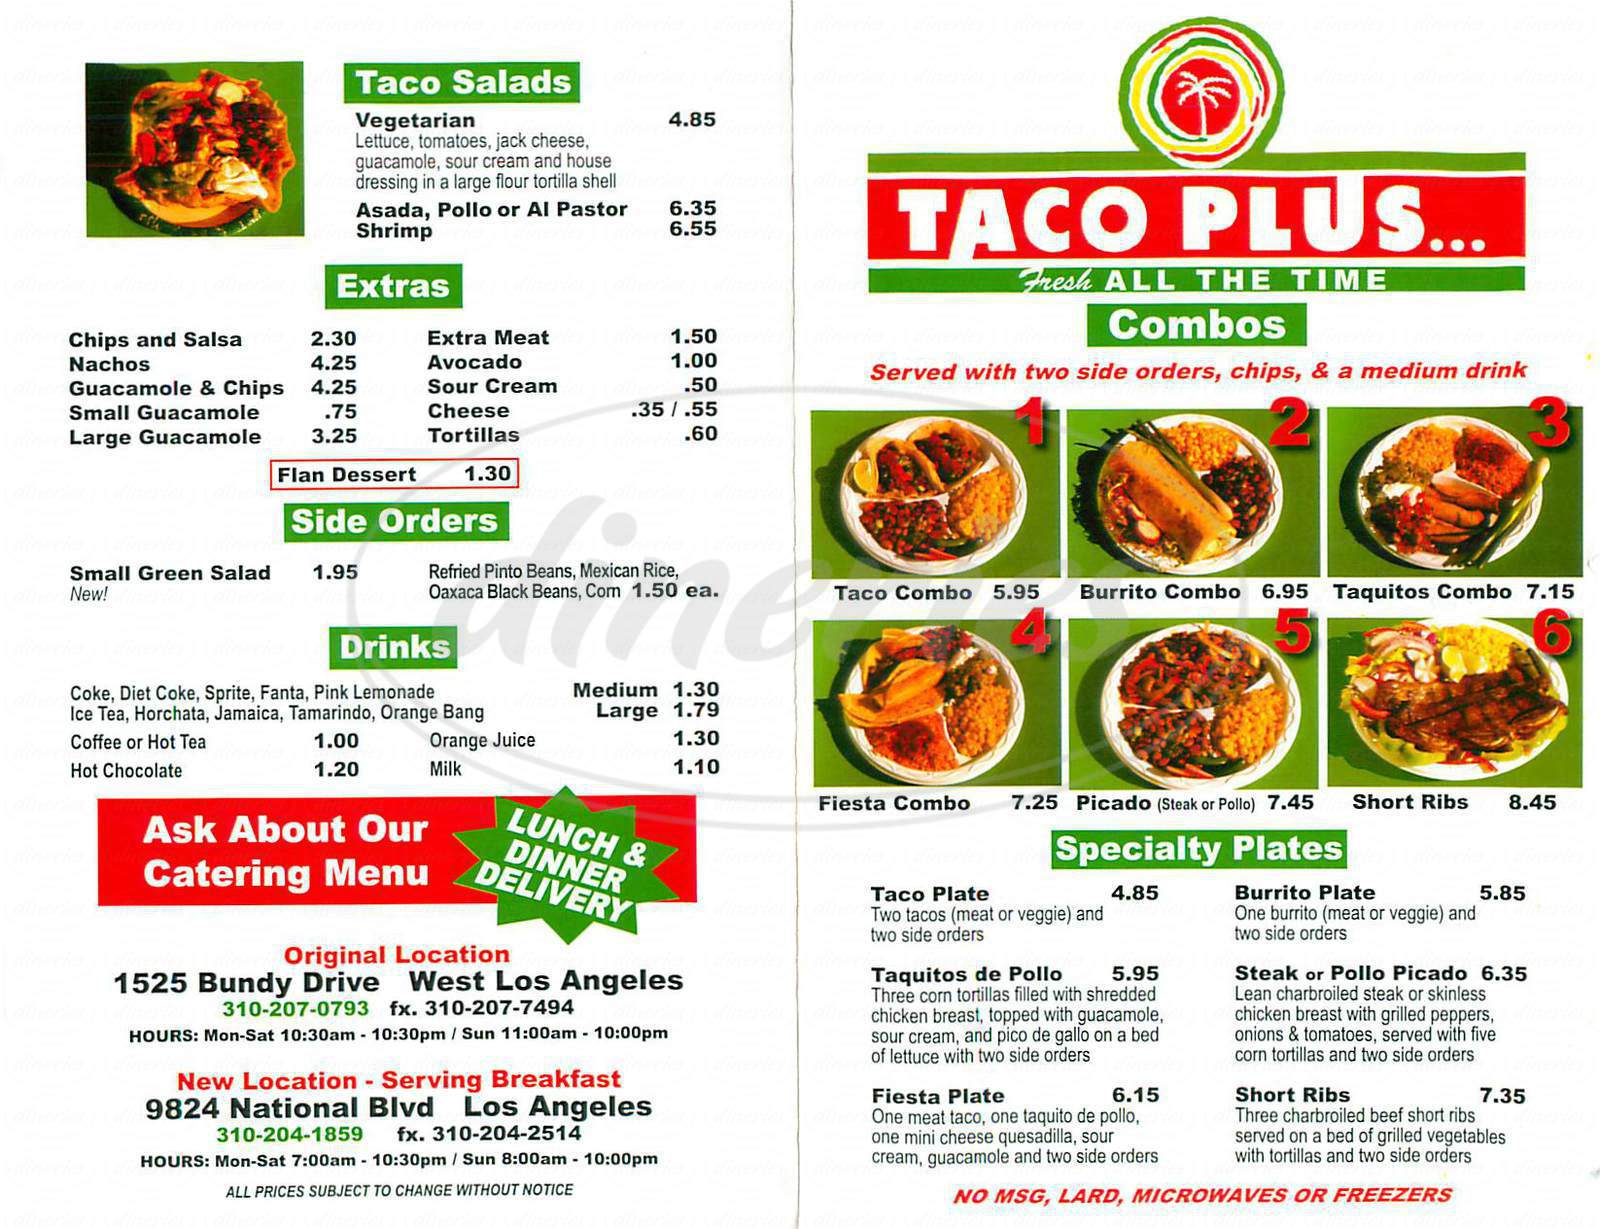 menu for Taco Plus